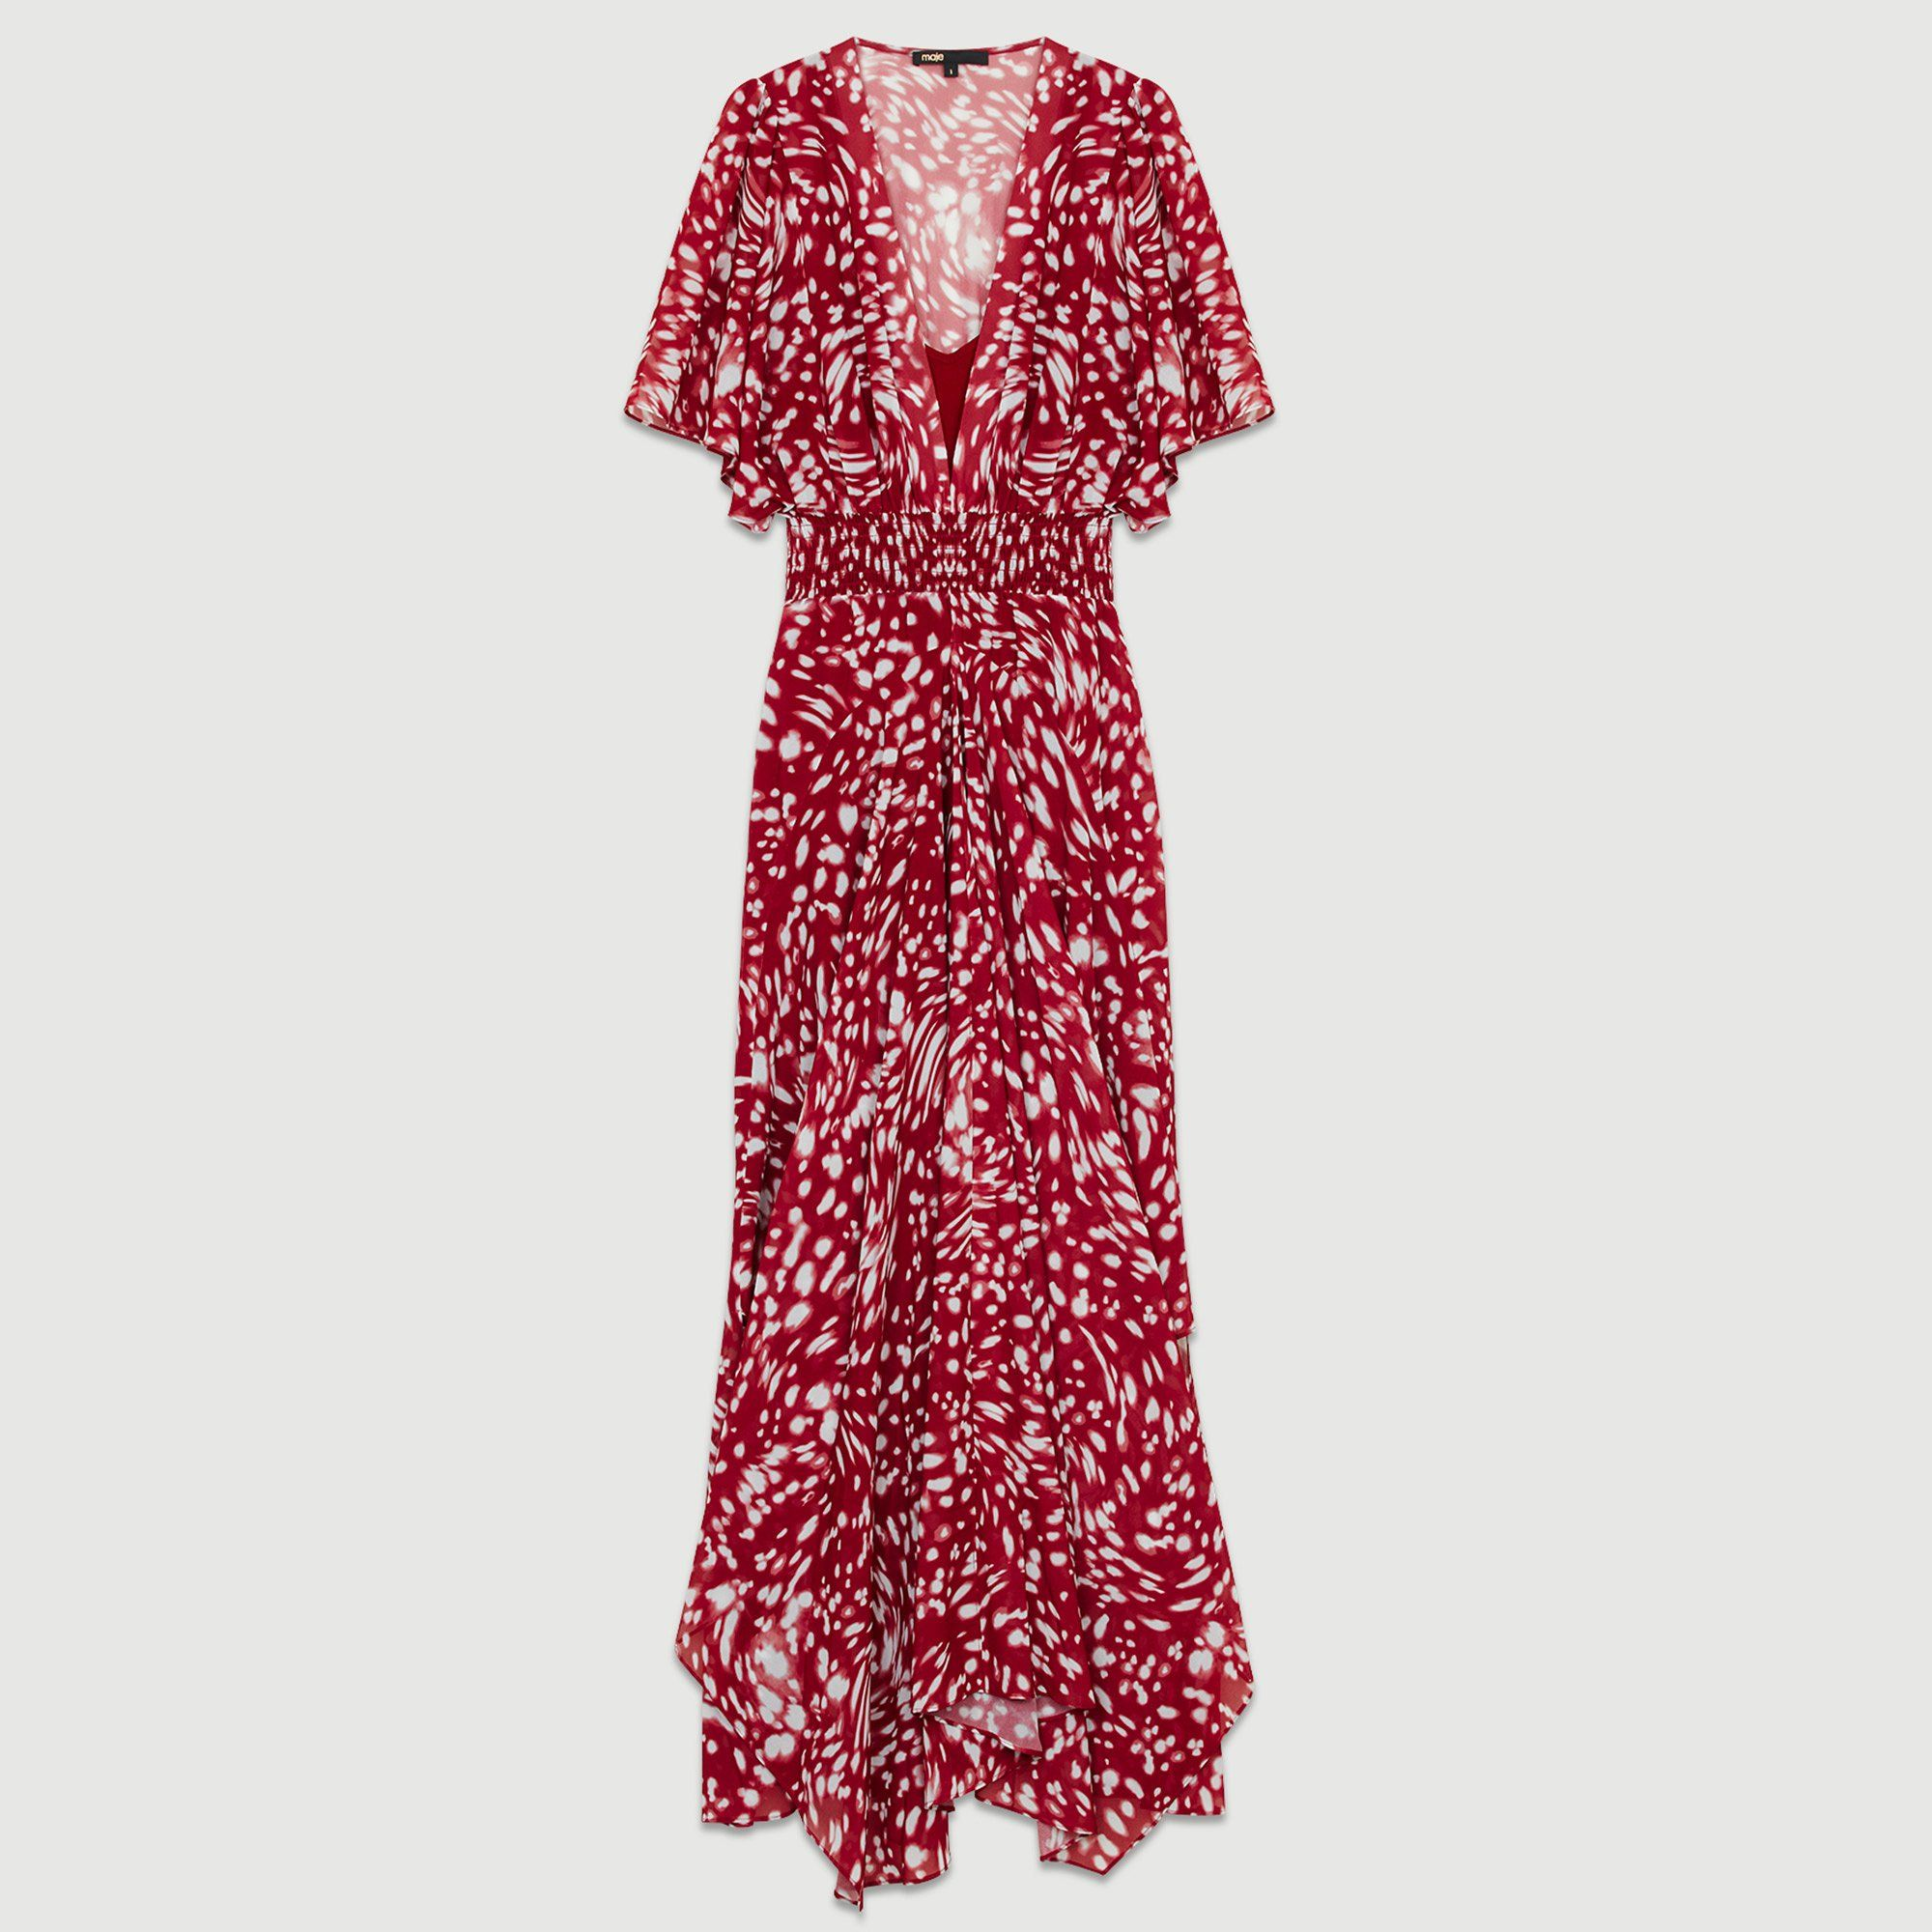 Hiver 40 Tendance Automne 2019Robe Robes 2018 zqUVGMSp